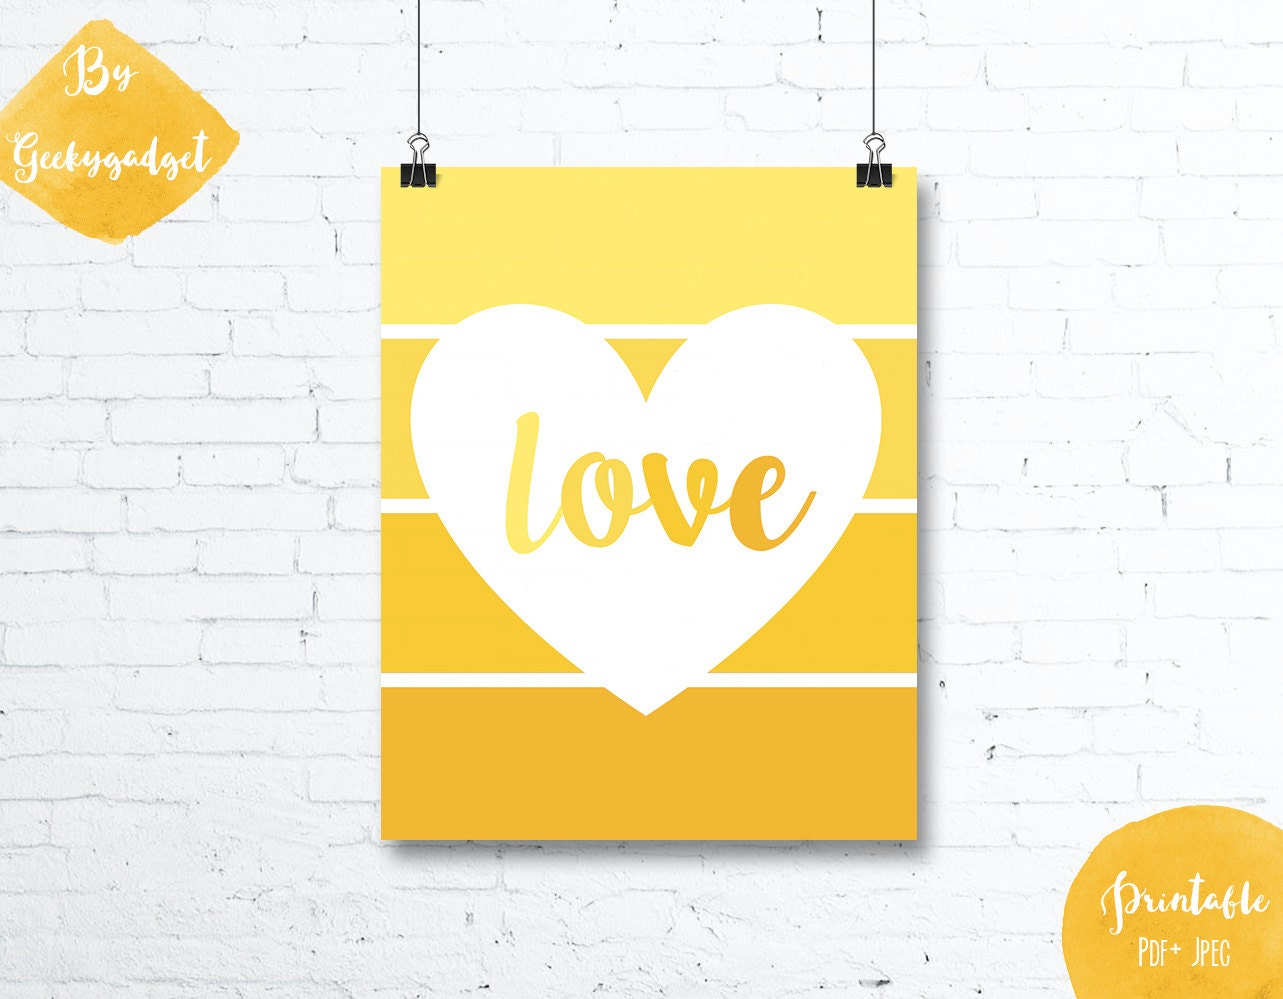 LOVE Heart and yellow paint chip - Nursery poster - Pdf printable ...